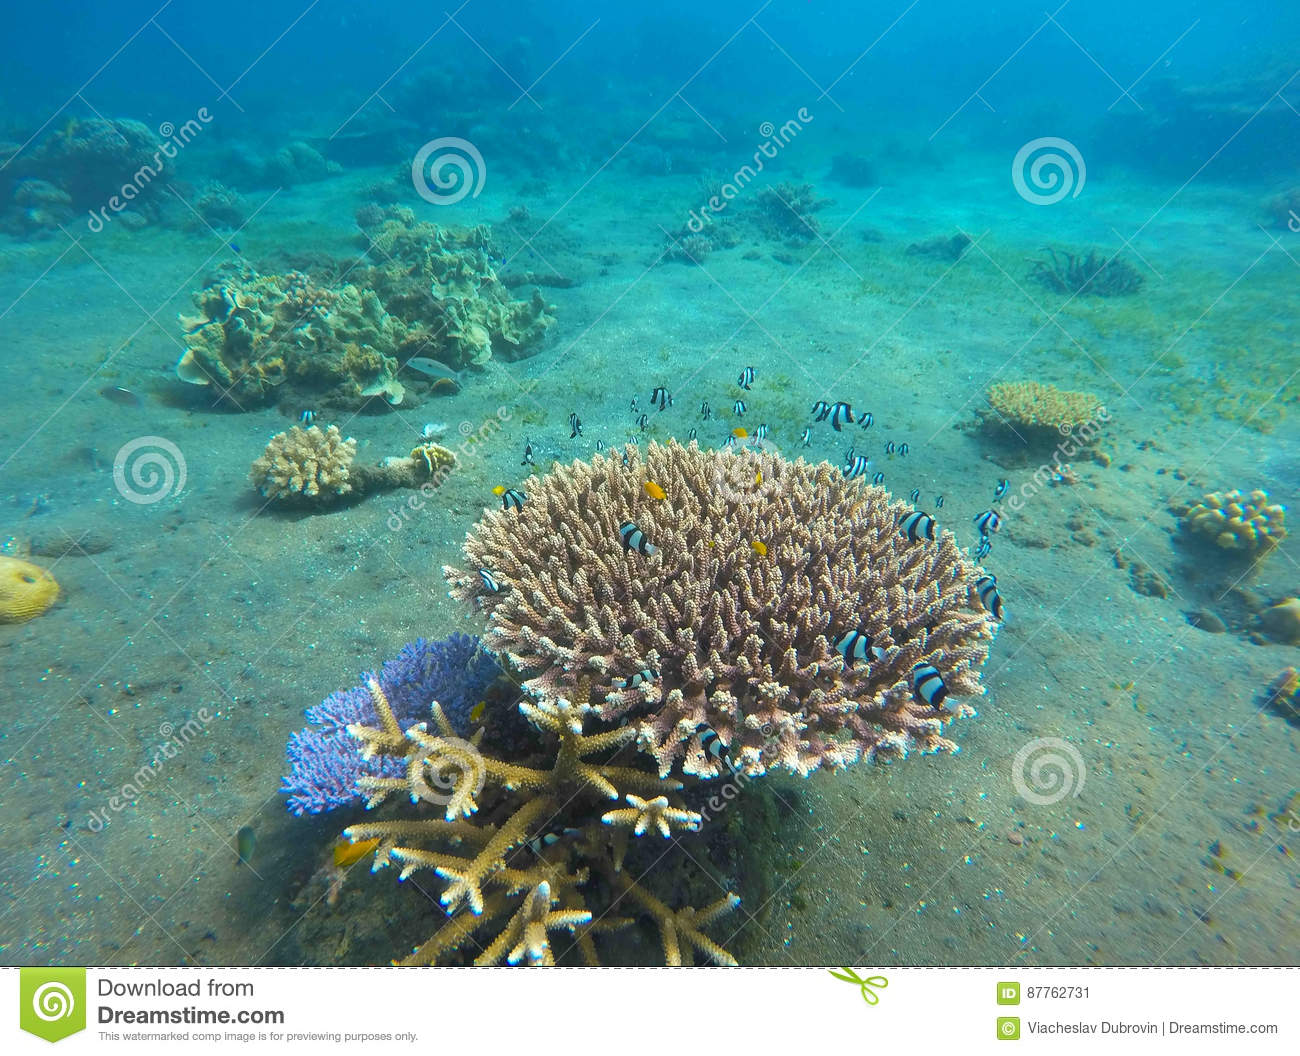 Small Neon Blue Coral Fishes Tropical In Wild Nature Damselfish Colony Sea Bottom With Young Ecosystem Tropic Snorkeling